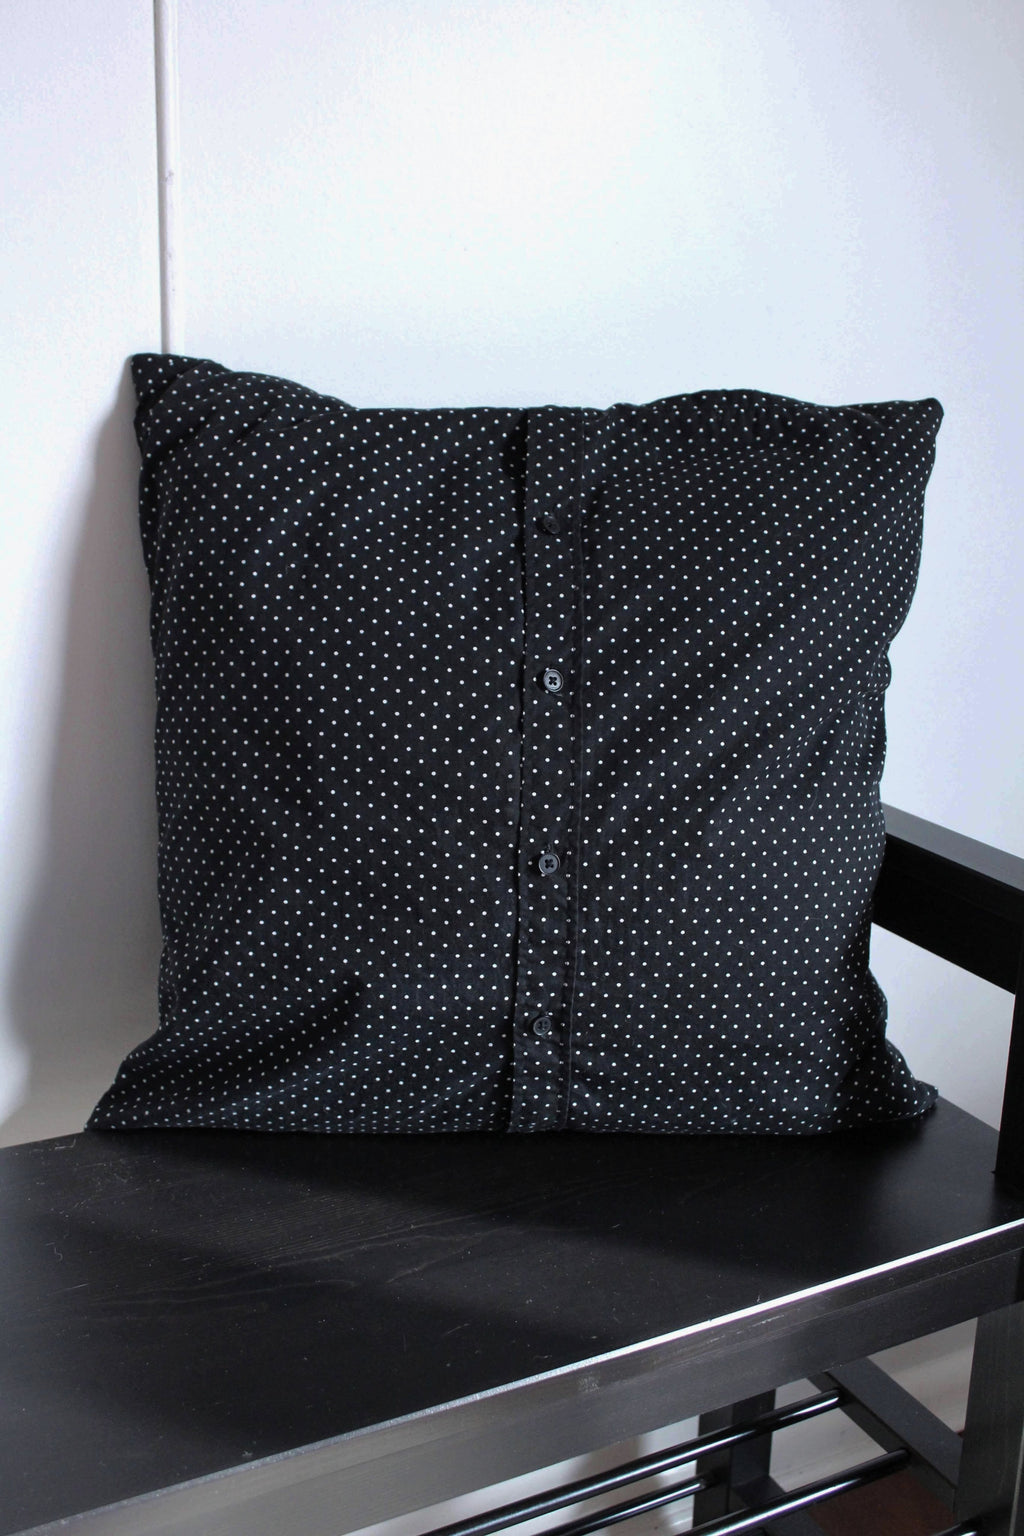 elizabeth o. vintage - Black Polka Dot Pillow